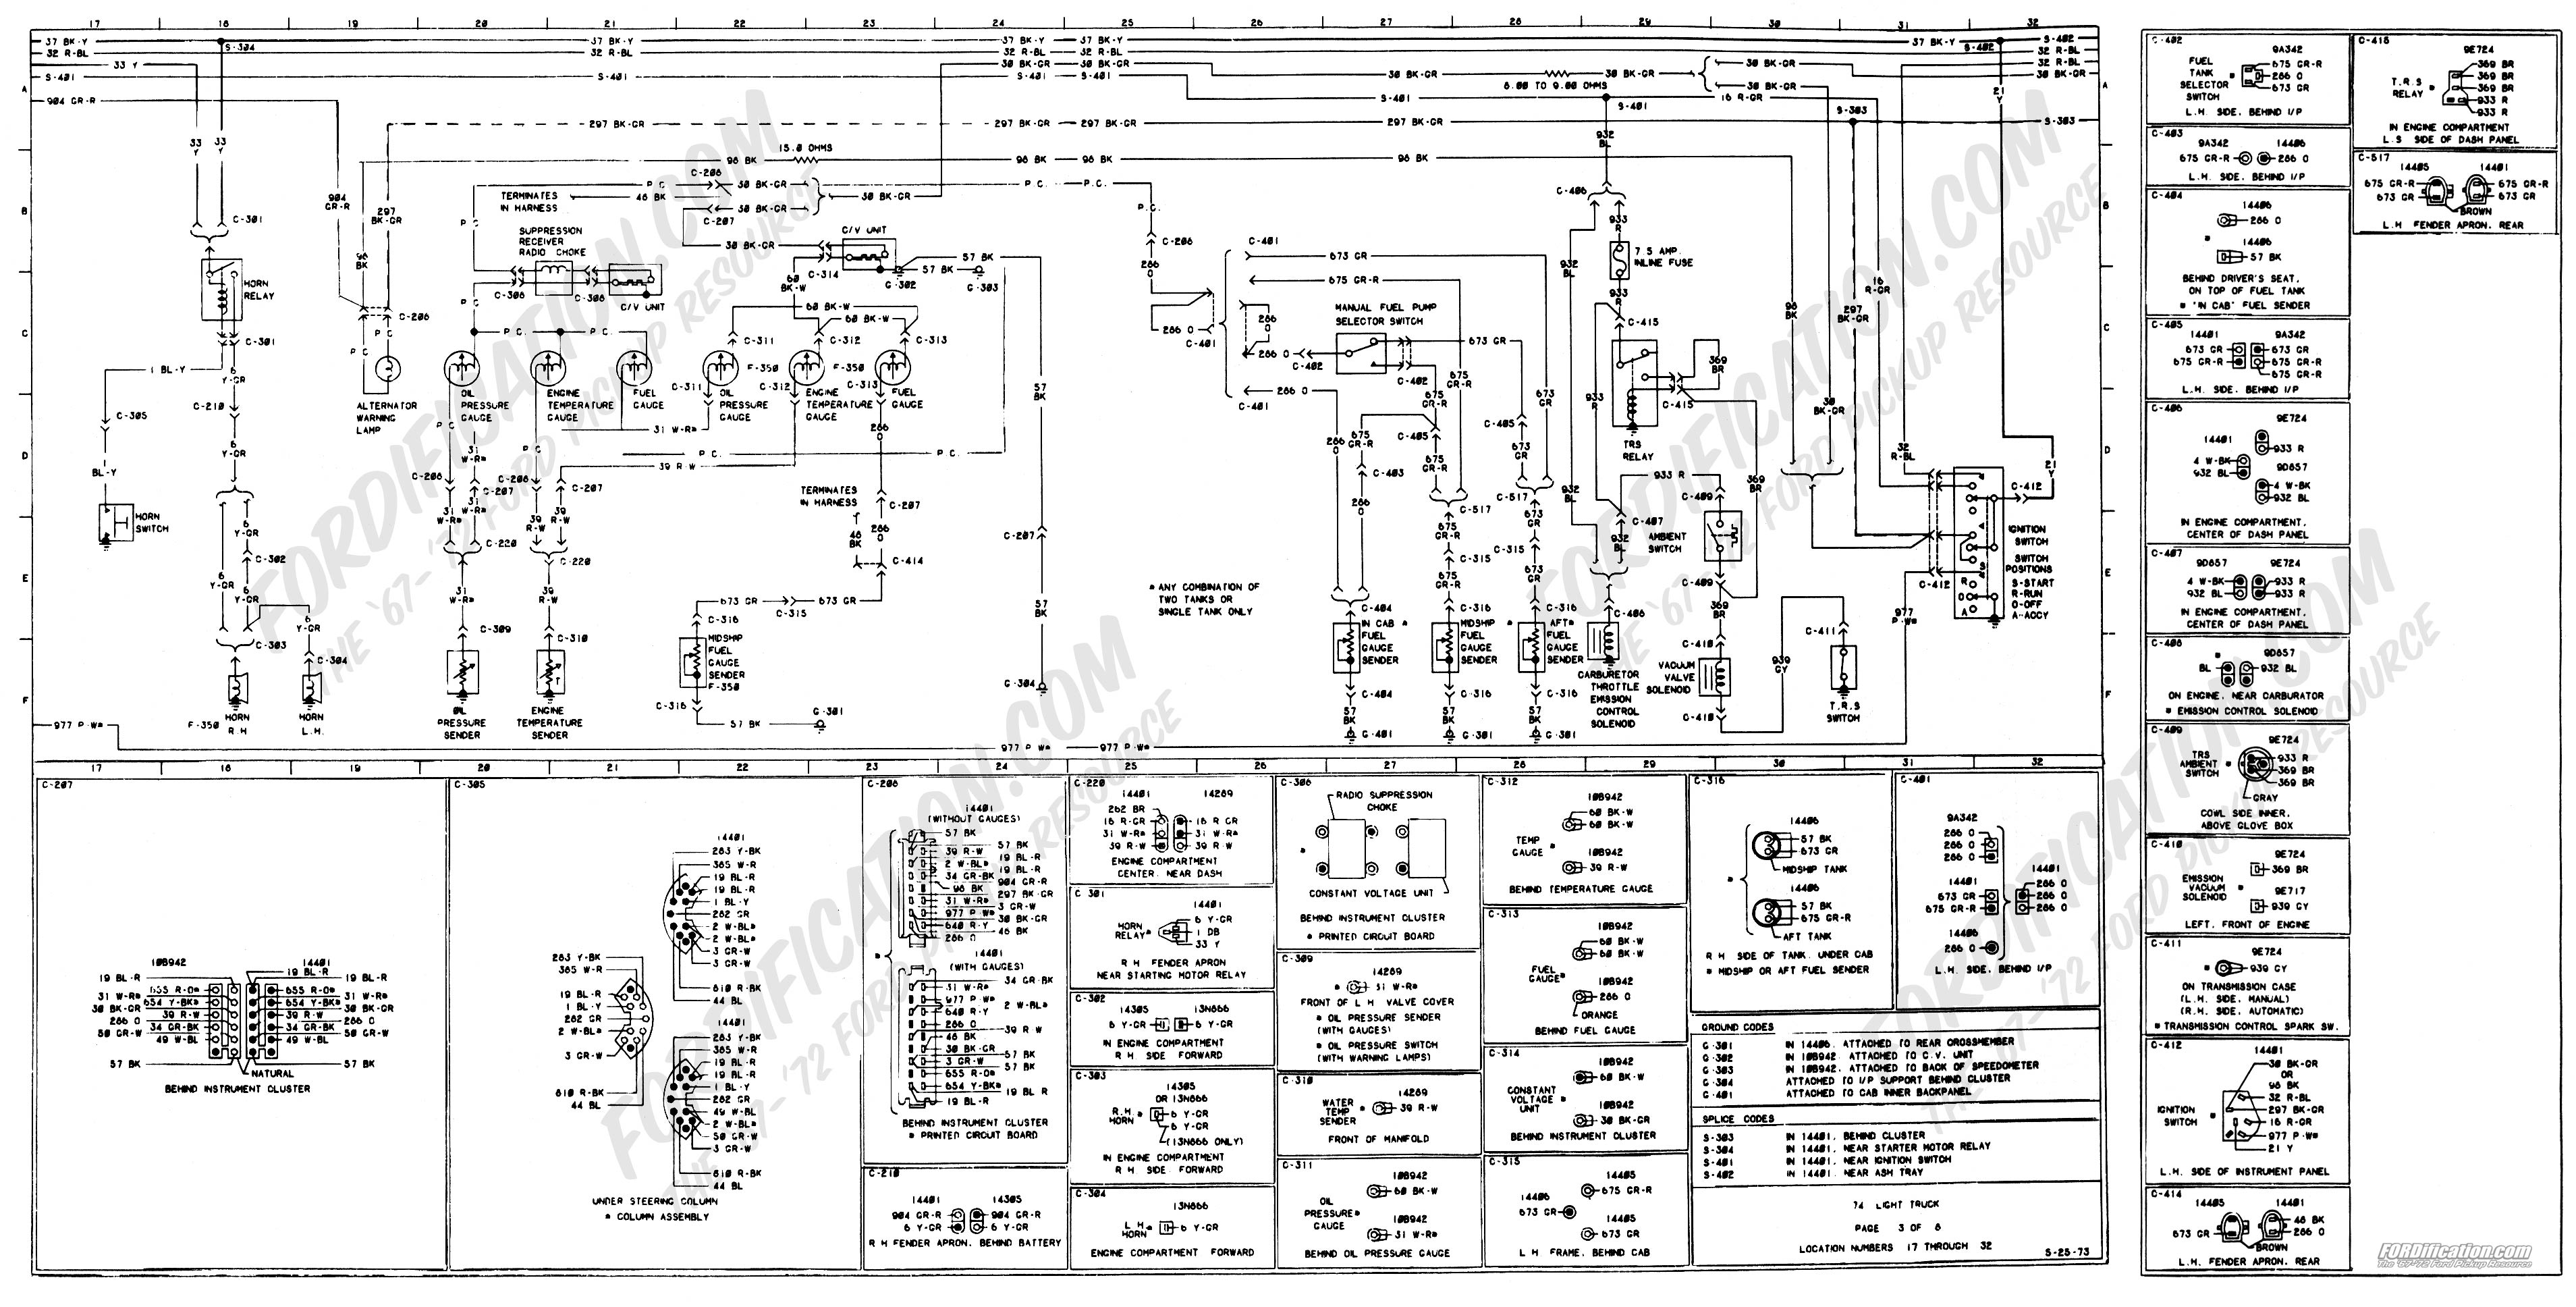 fordification wiring diagram 1967 1972 ford trucks wiring diagram rh hg4 co Ford Factory Radio Wiring Harness 2003 Ford Explorer Wiring Schematic